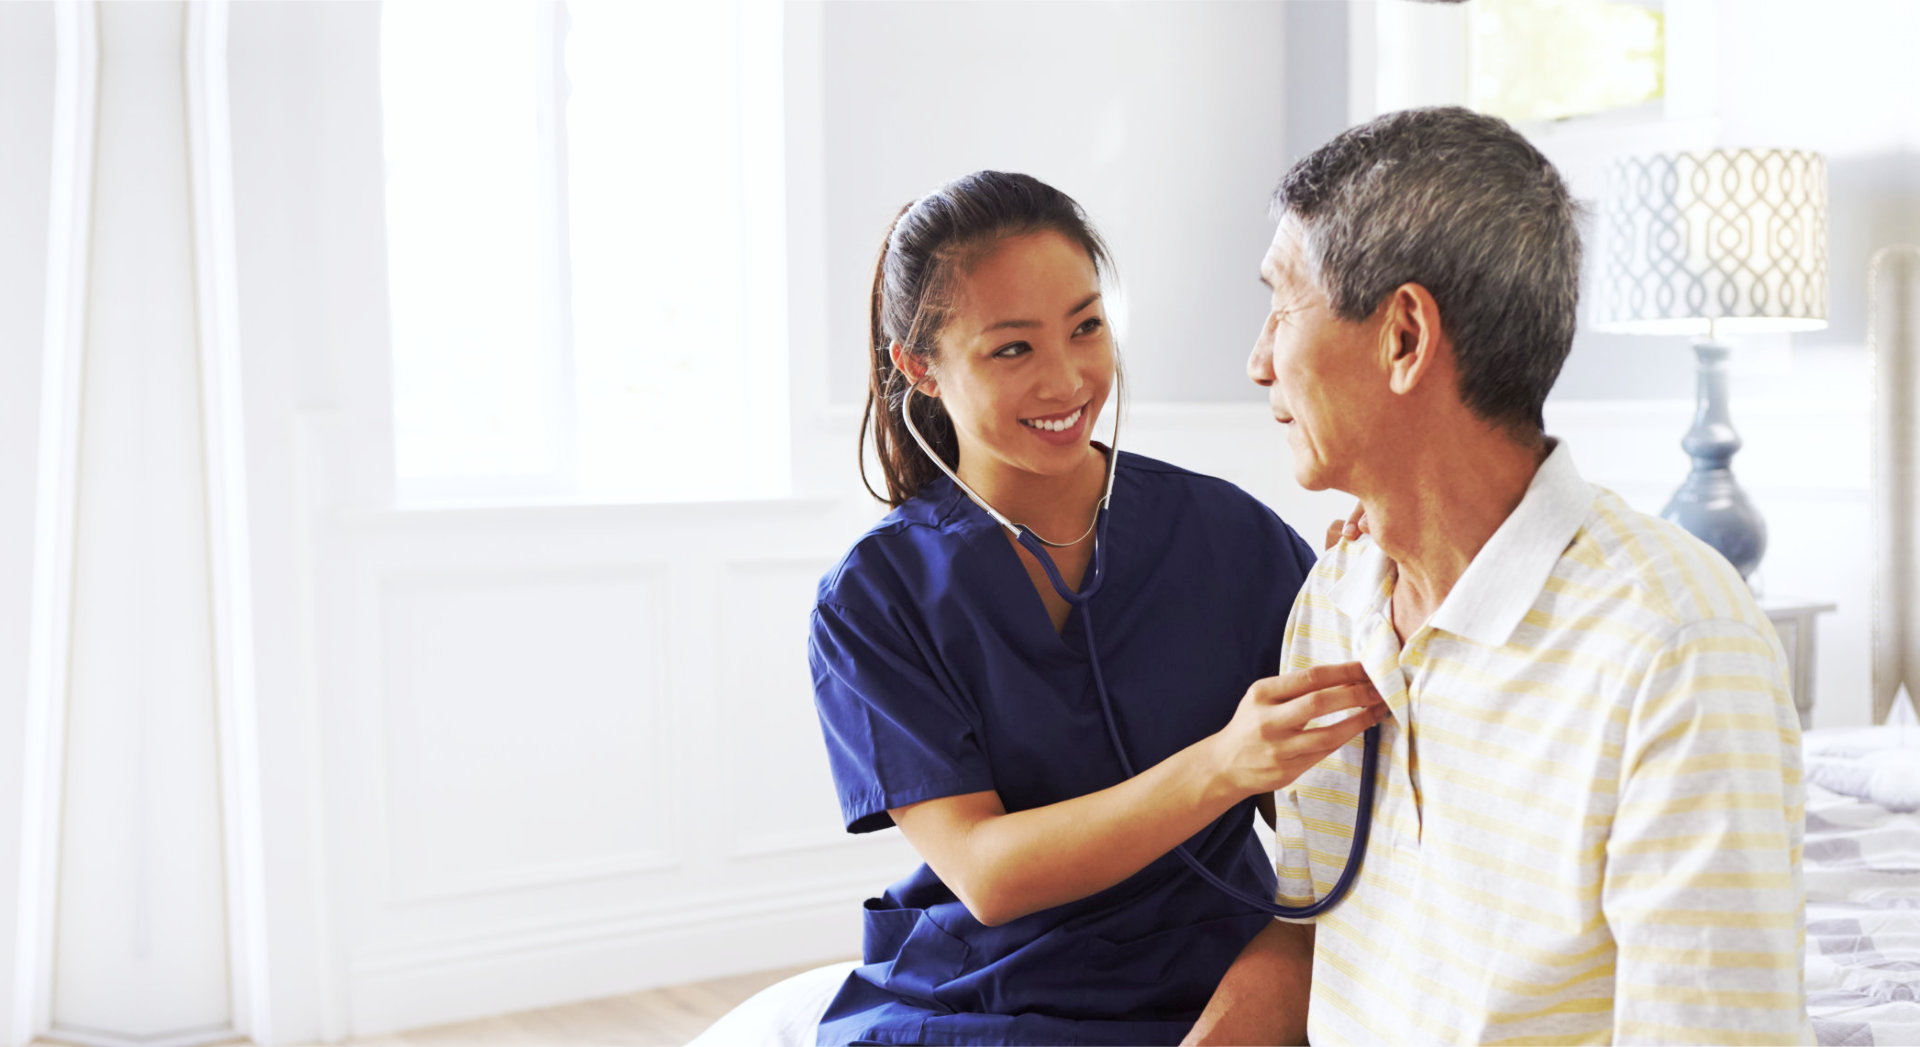 caregiver checking heartbeat of old man